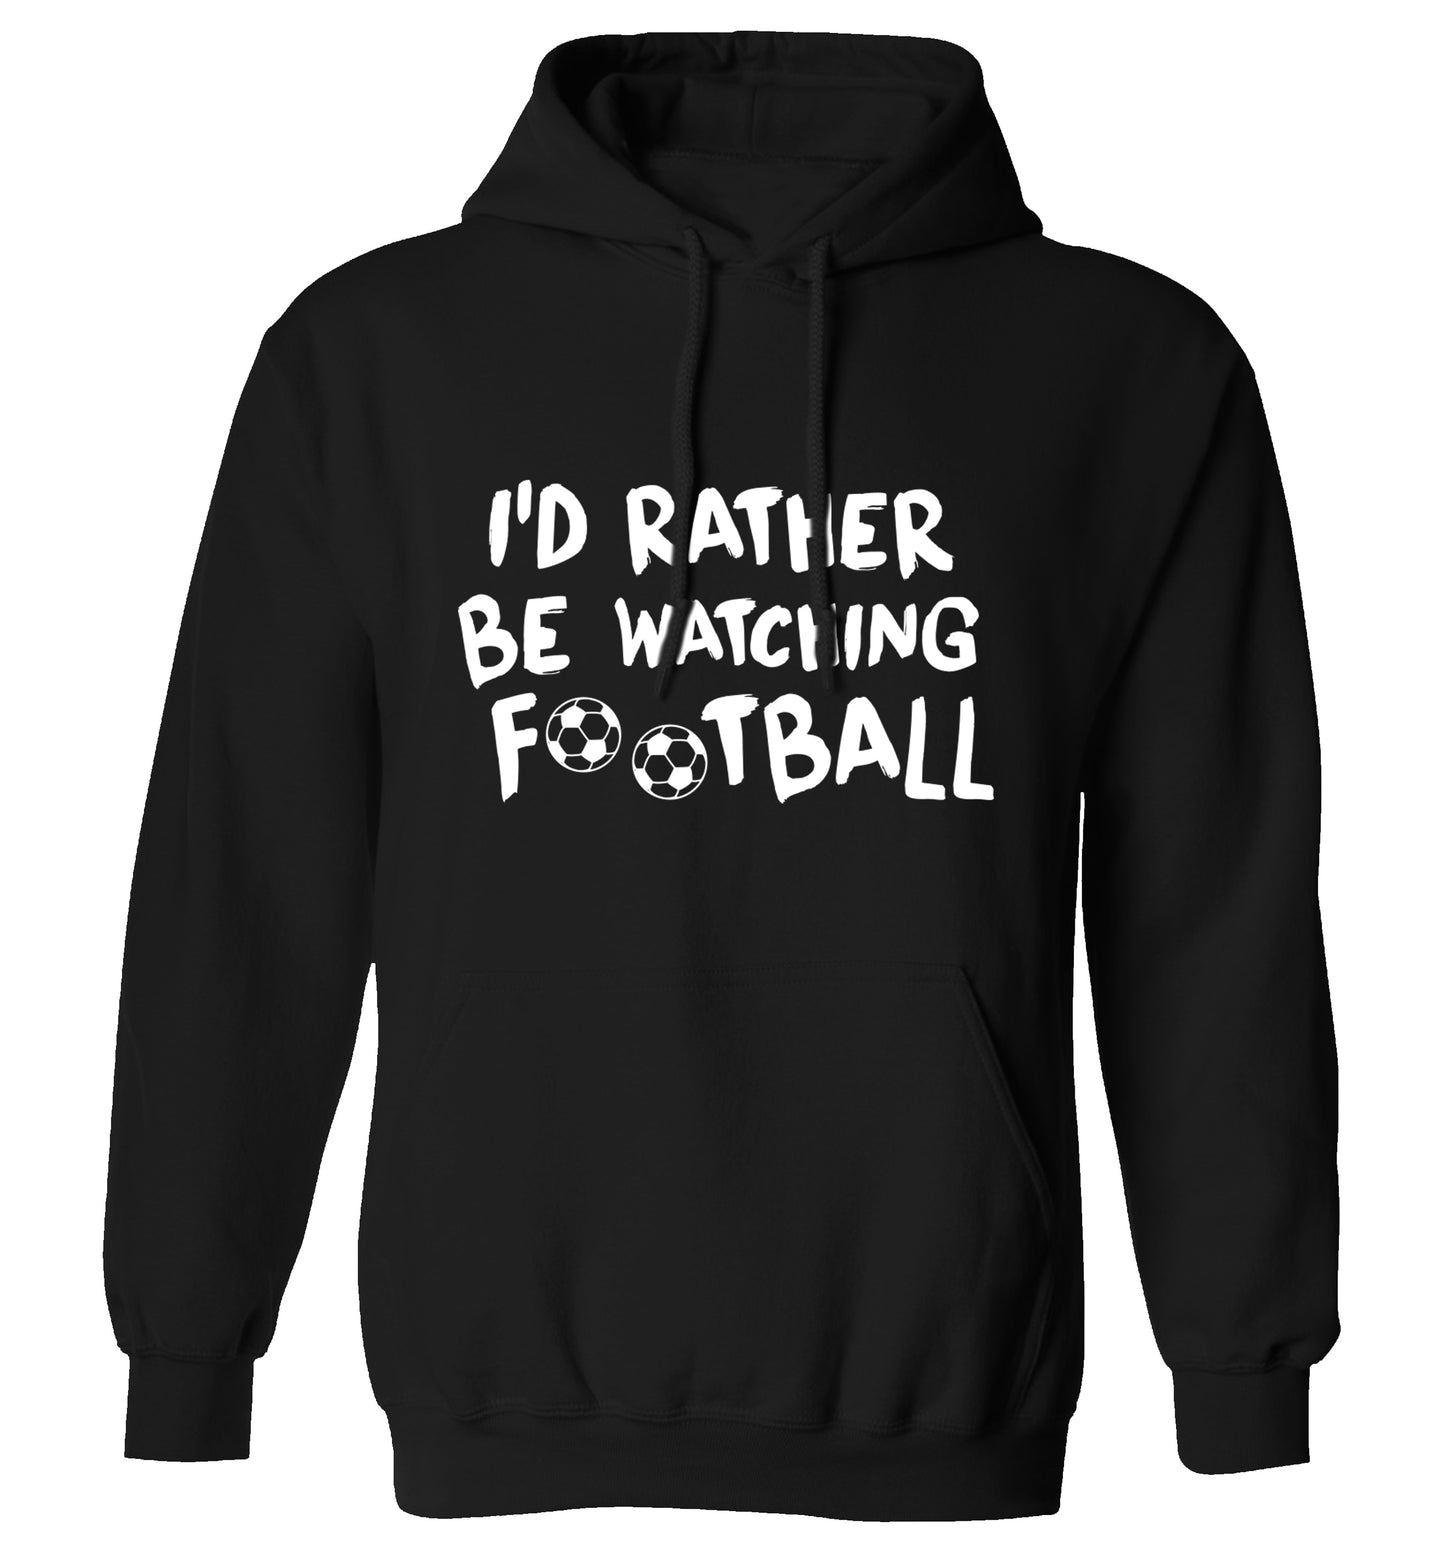 I'd rather be watching football adults unisexblack hoodie 2XL